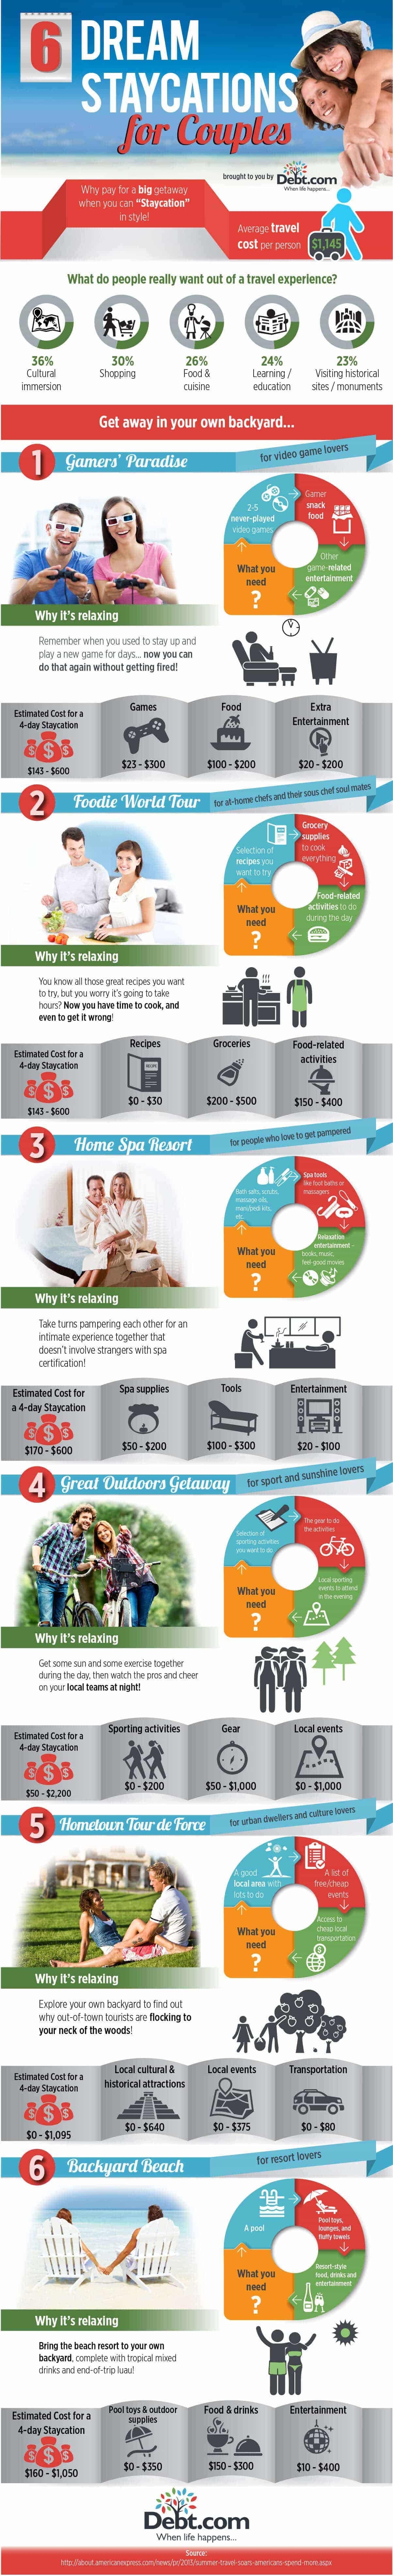 6 Dream Staycations Infographic